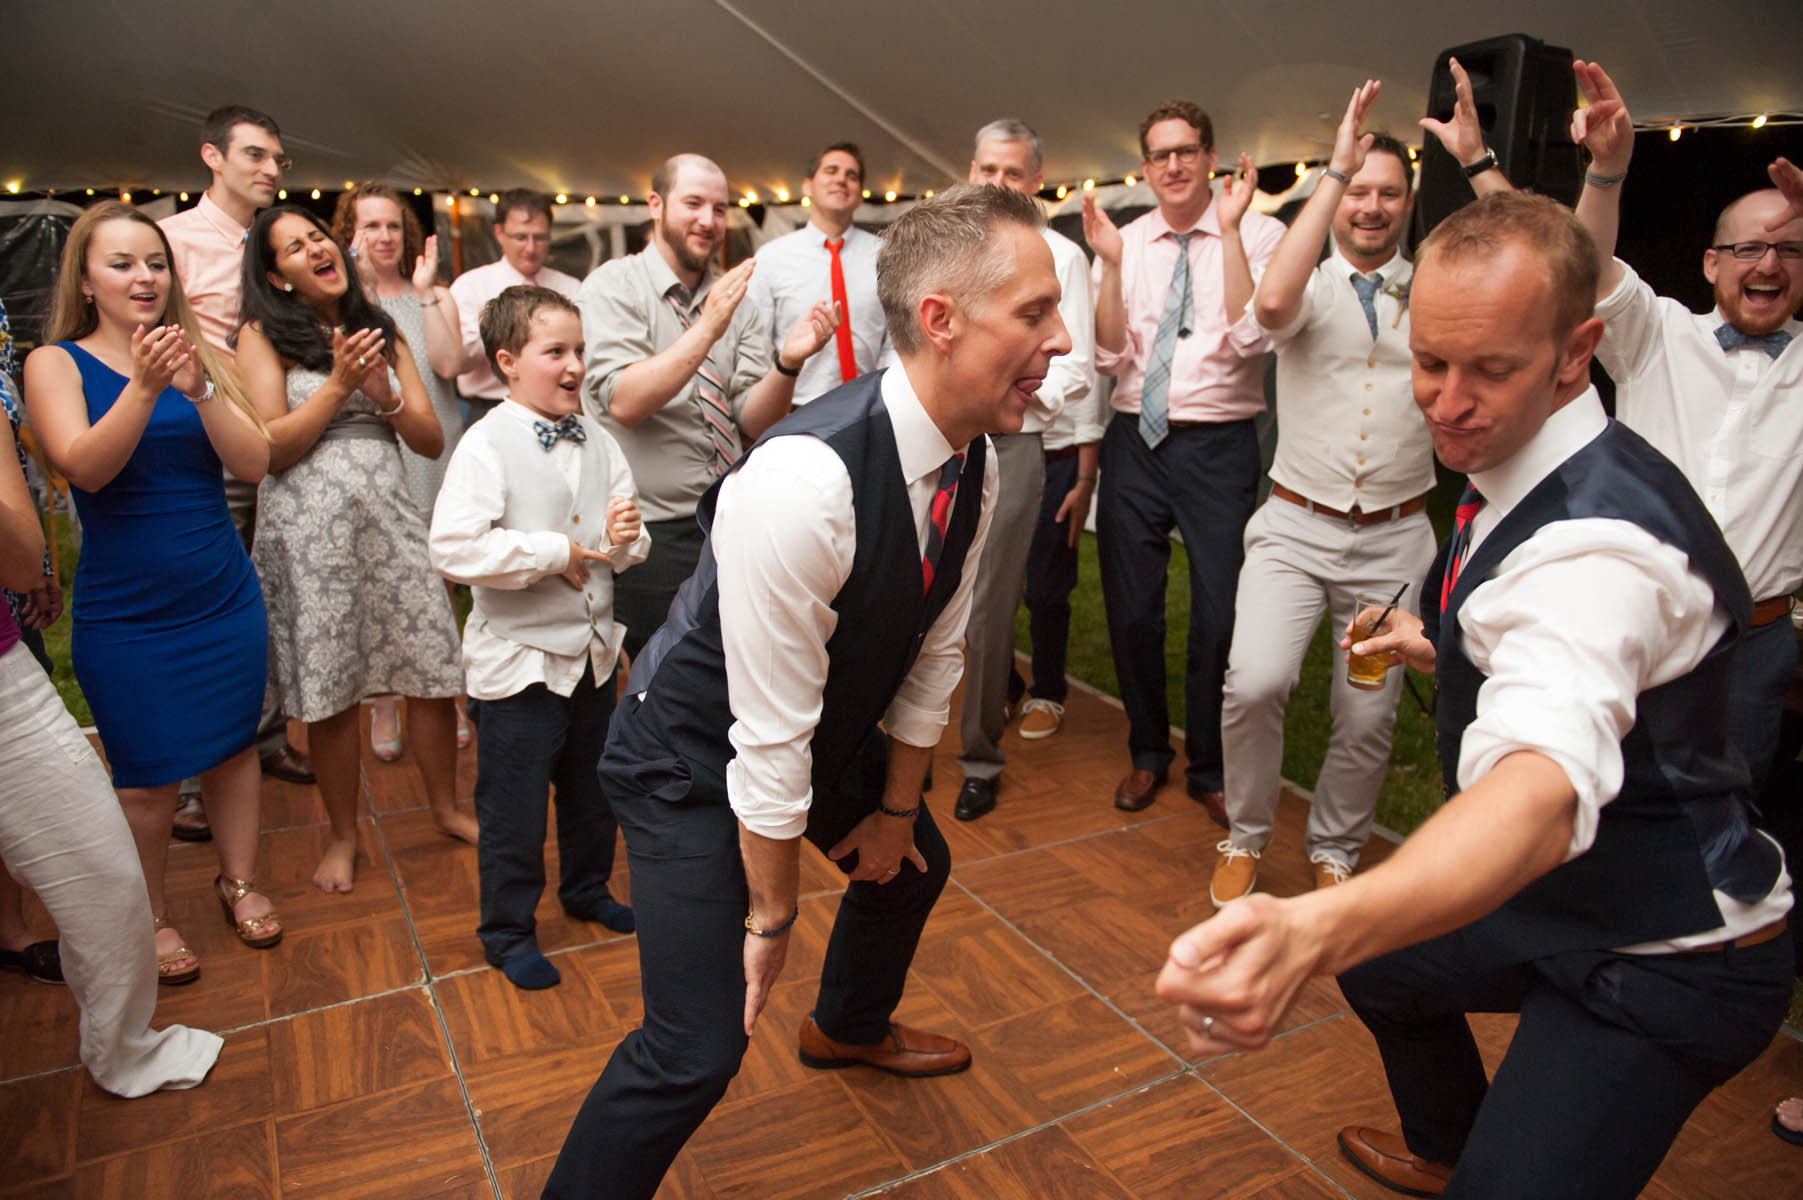 Best dance party ever at this destination wedding in Provincetown!